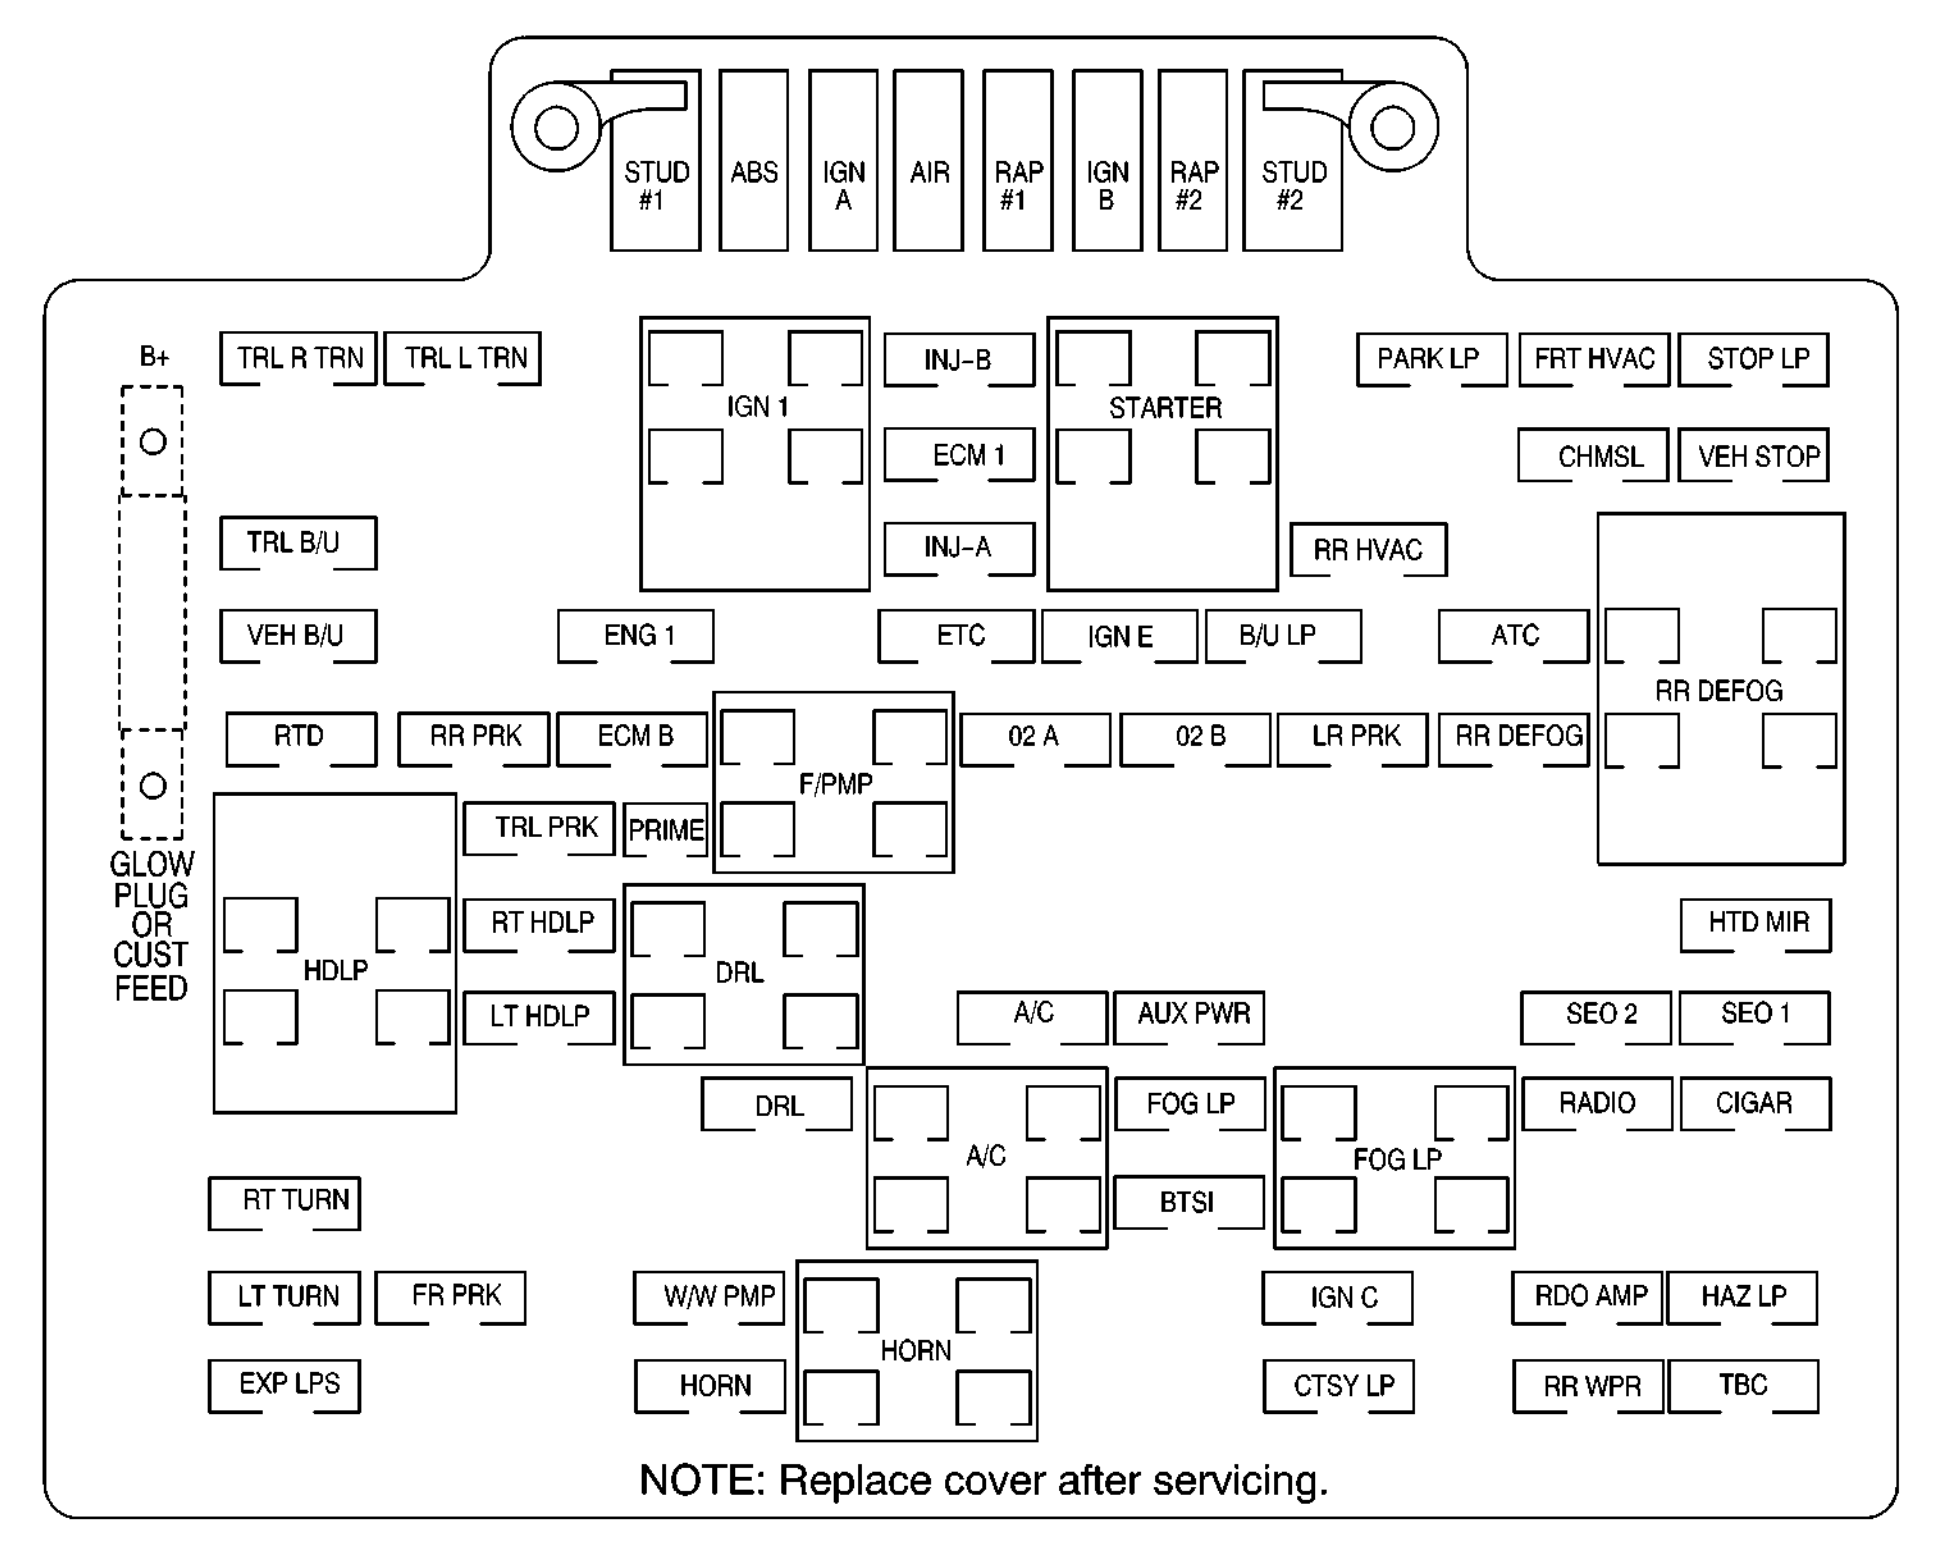 2008 Chevy Cobalt Fuse Box Diagram Wiring Site Resource